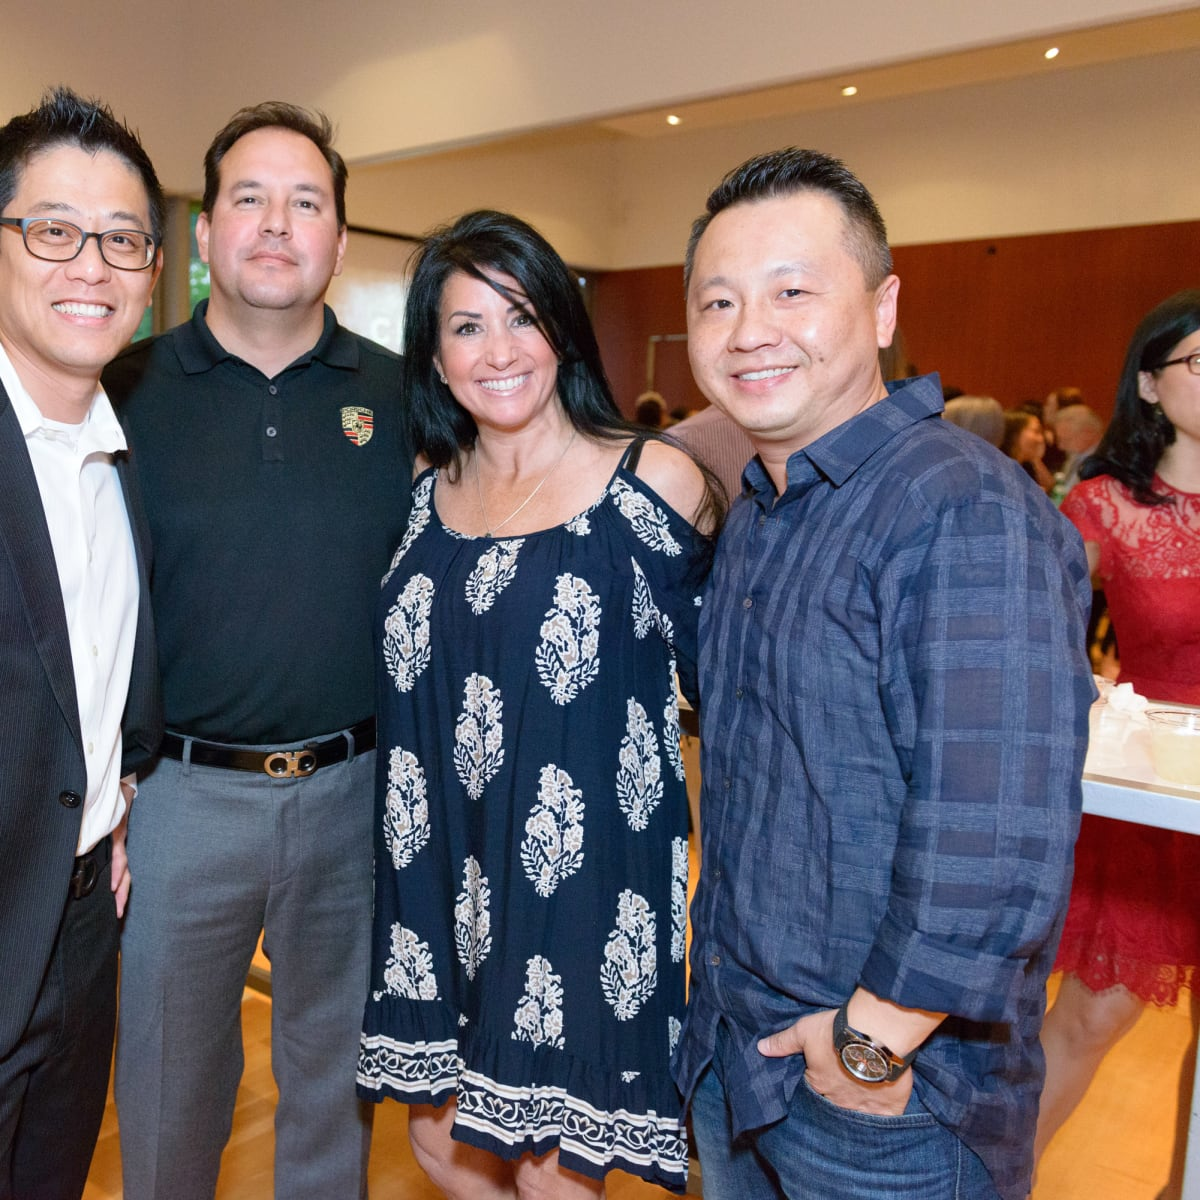 Tastemakers Houston 5/16 Efan Hsu, Jorge Olivas, Michelle Wuerch, Dan Koo